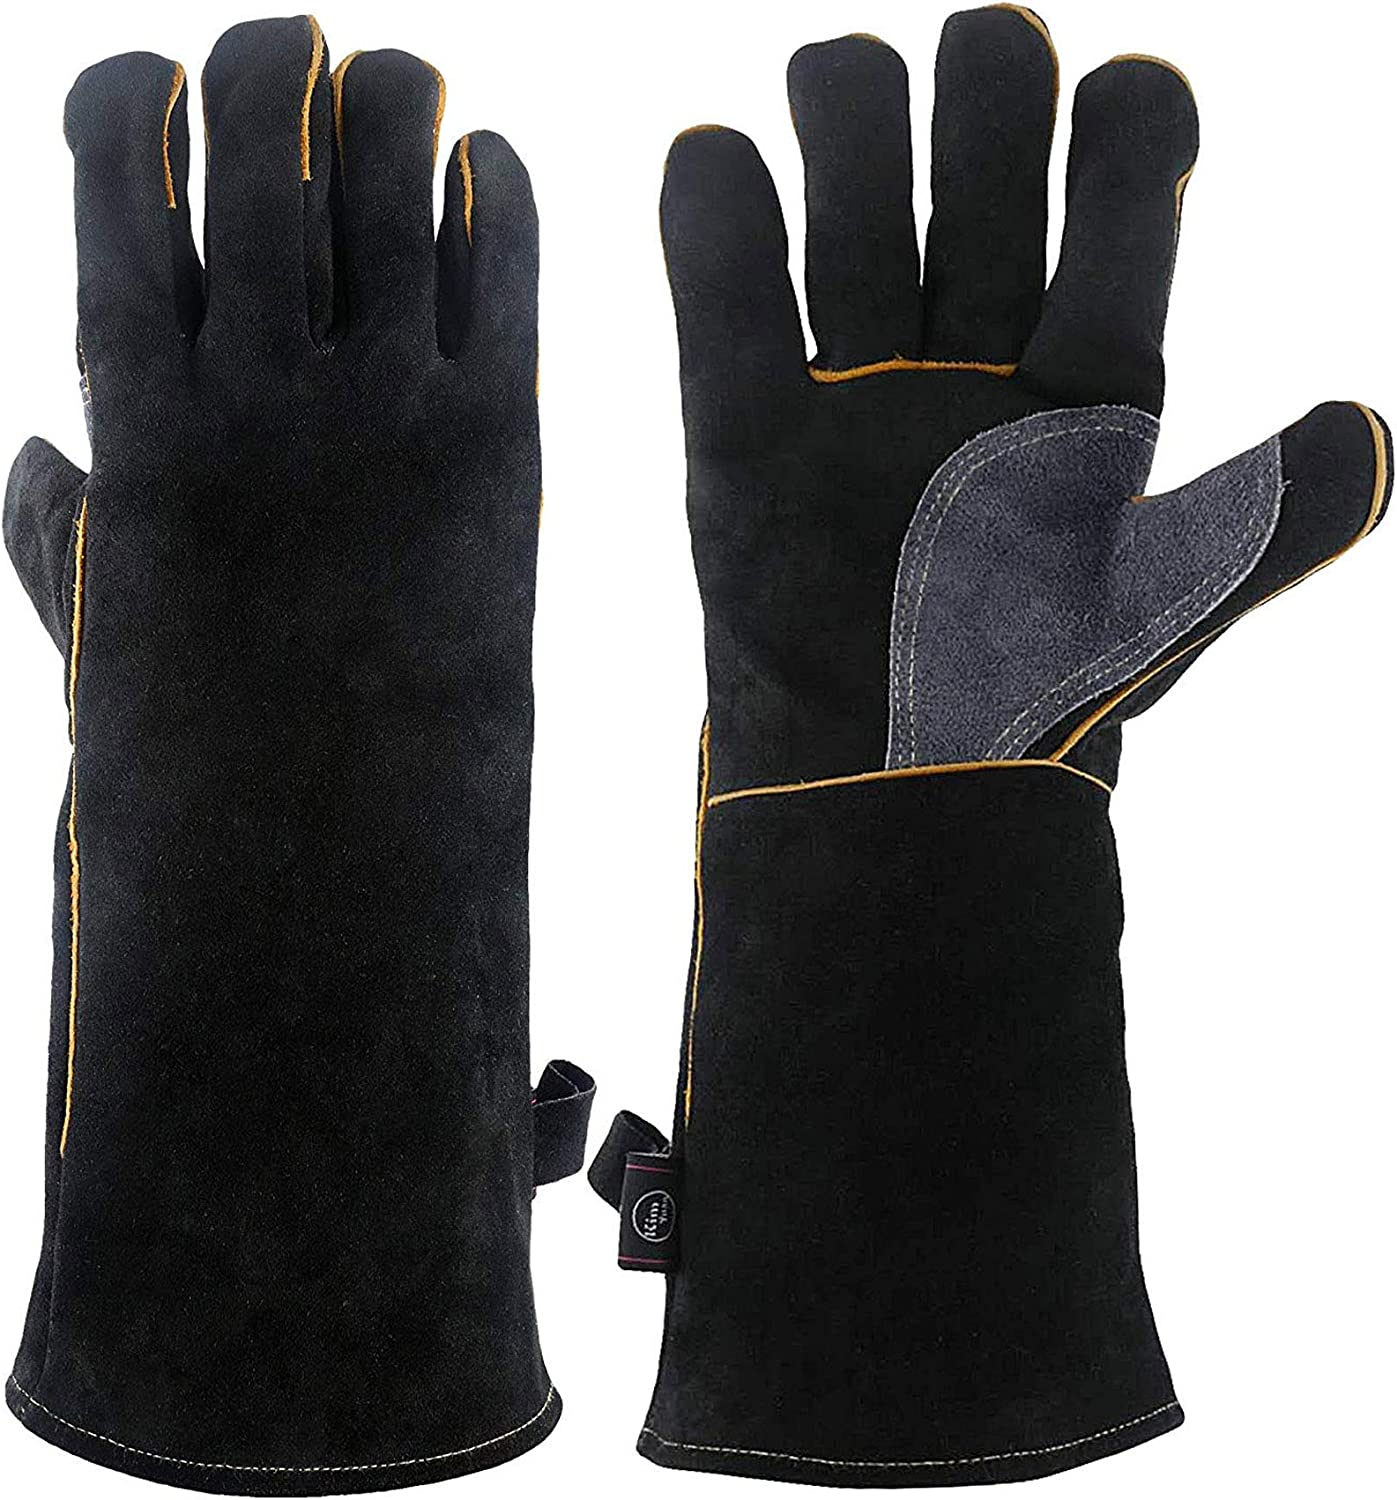 KIM YUAN Extreme Now free shipping Ranking TOP9 Heat Fire Kevlar Resistant with Leather Gloves